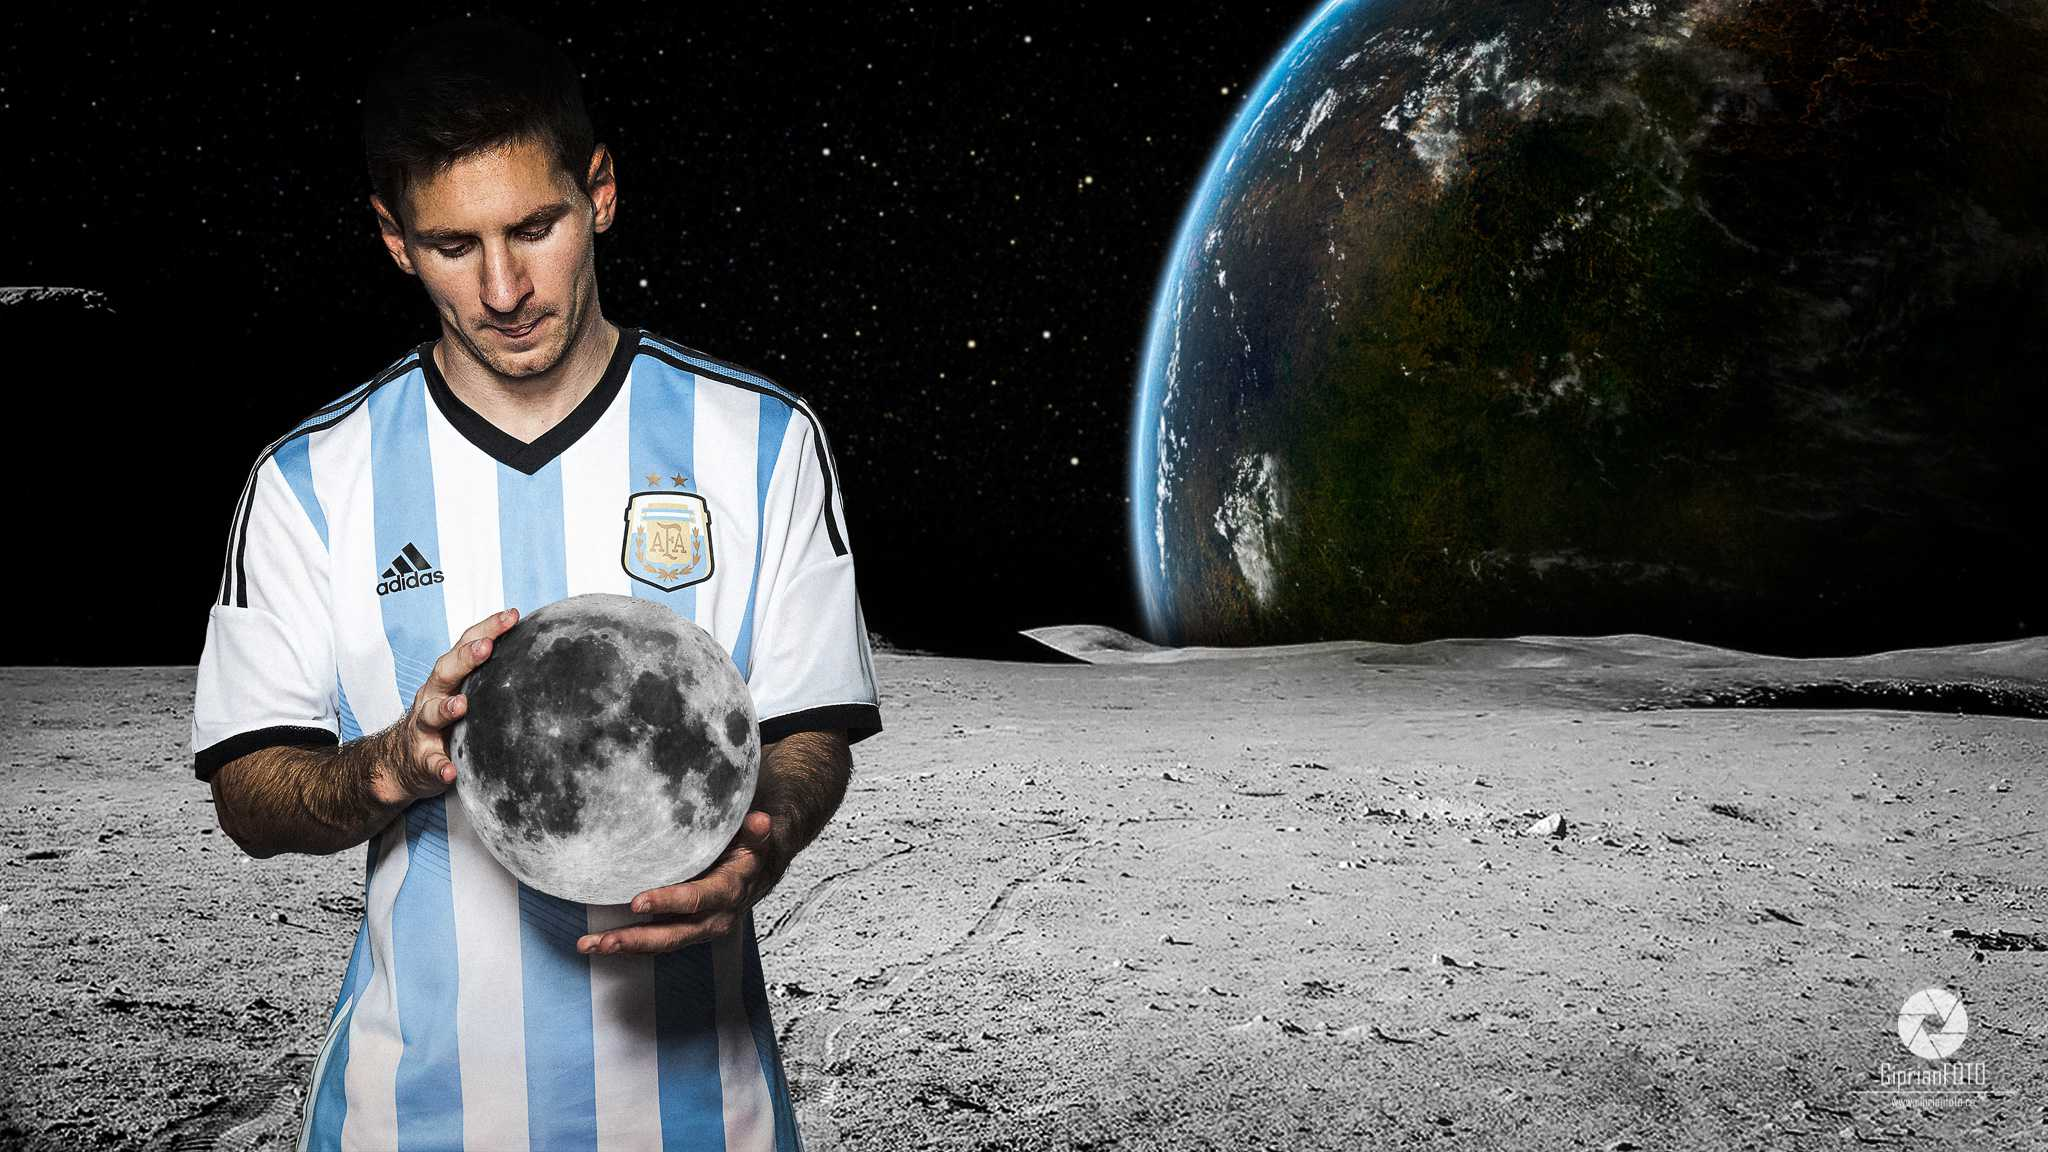 Lionel Messi With Moon In Hands, Photoshop Manipulation Tutorial, CiprianFOTO